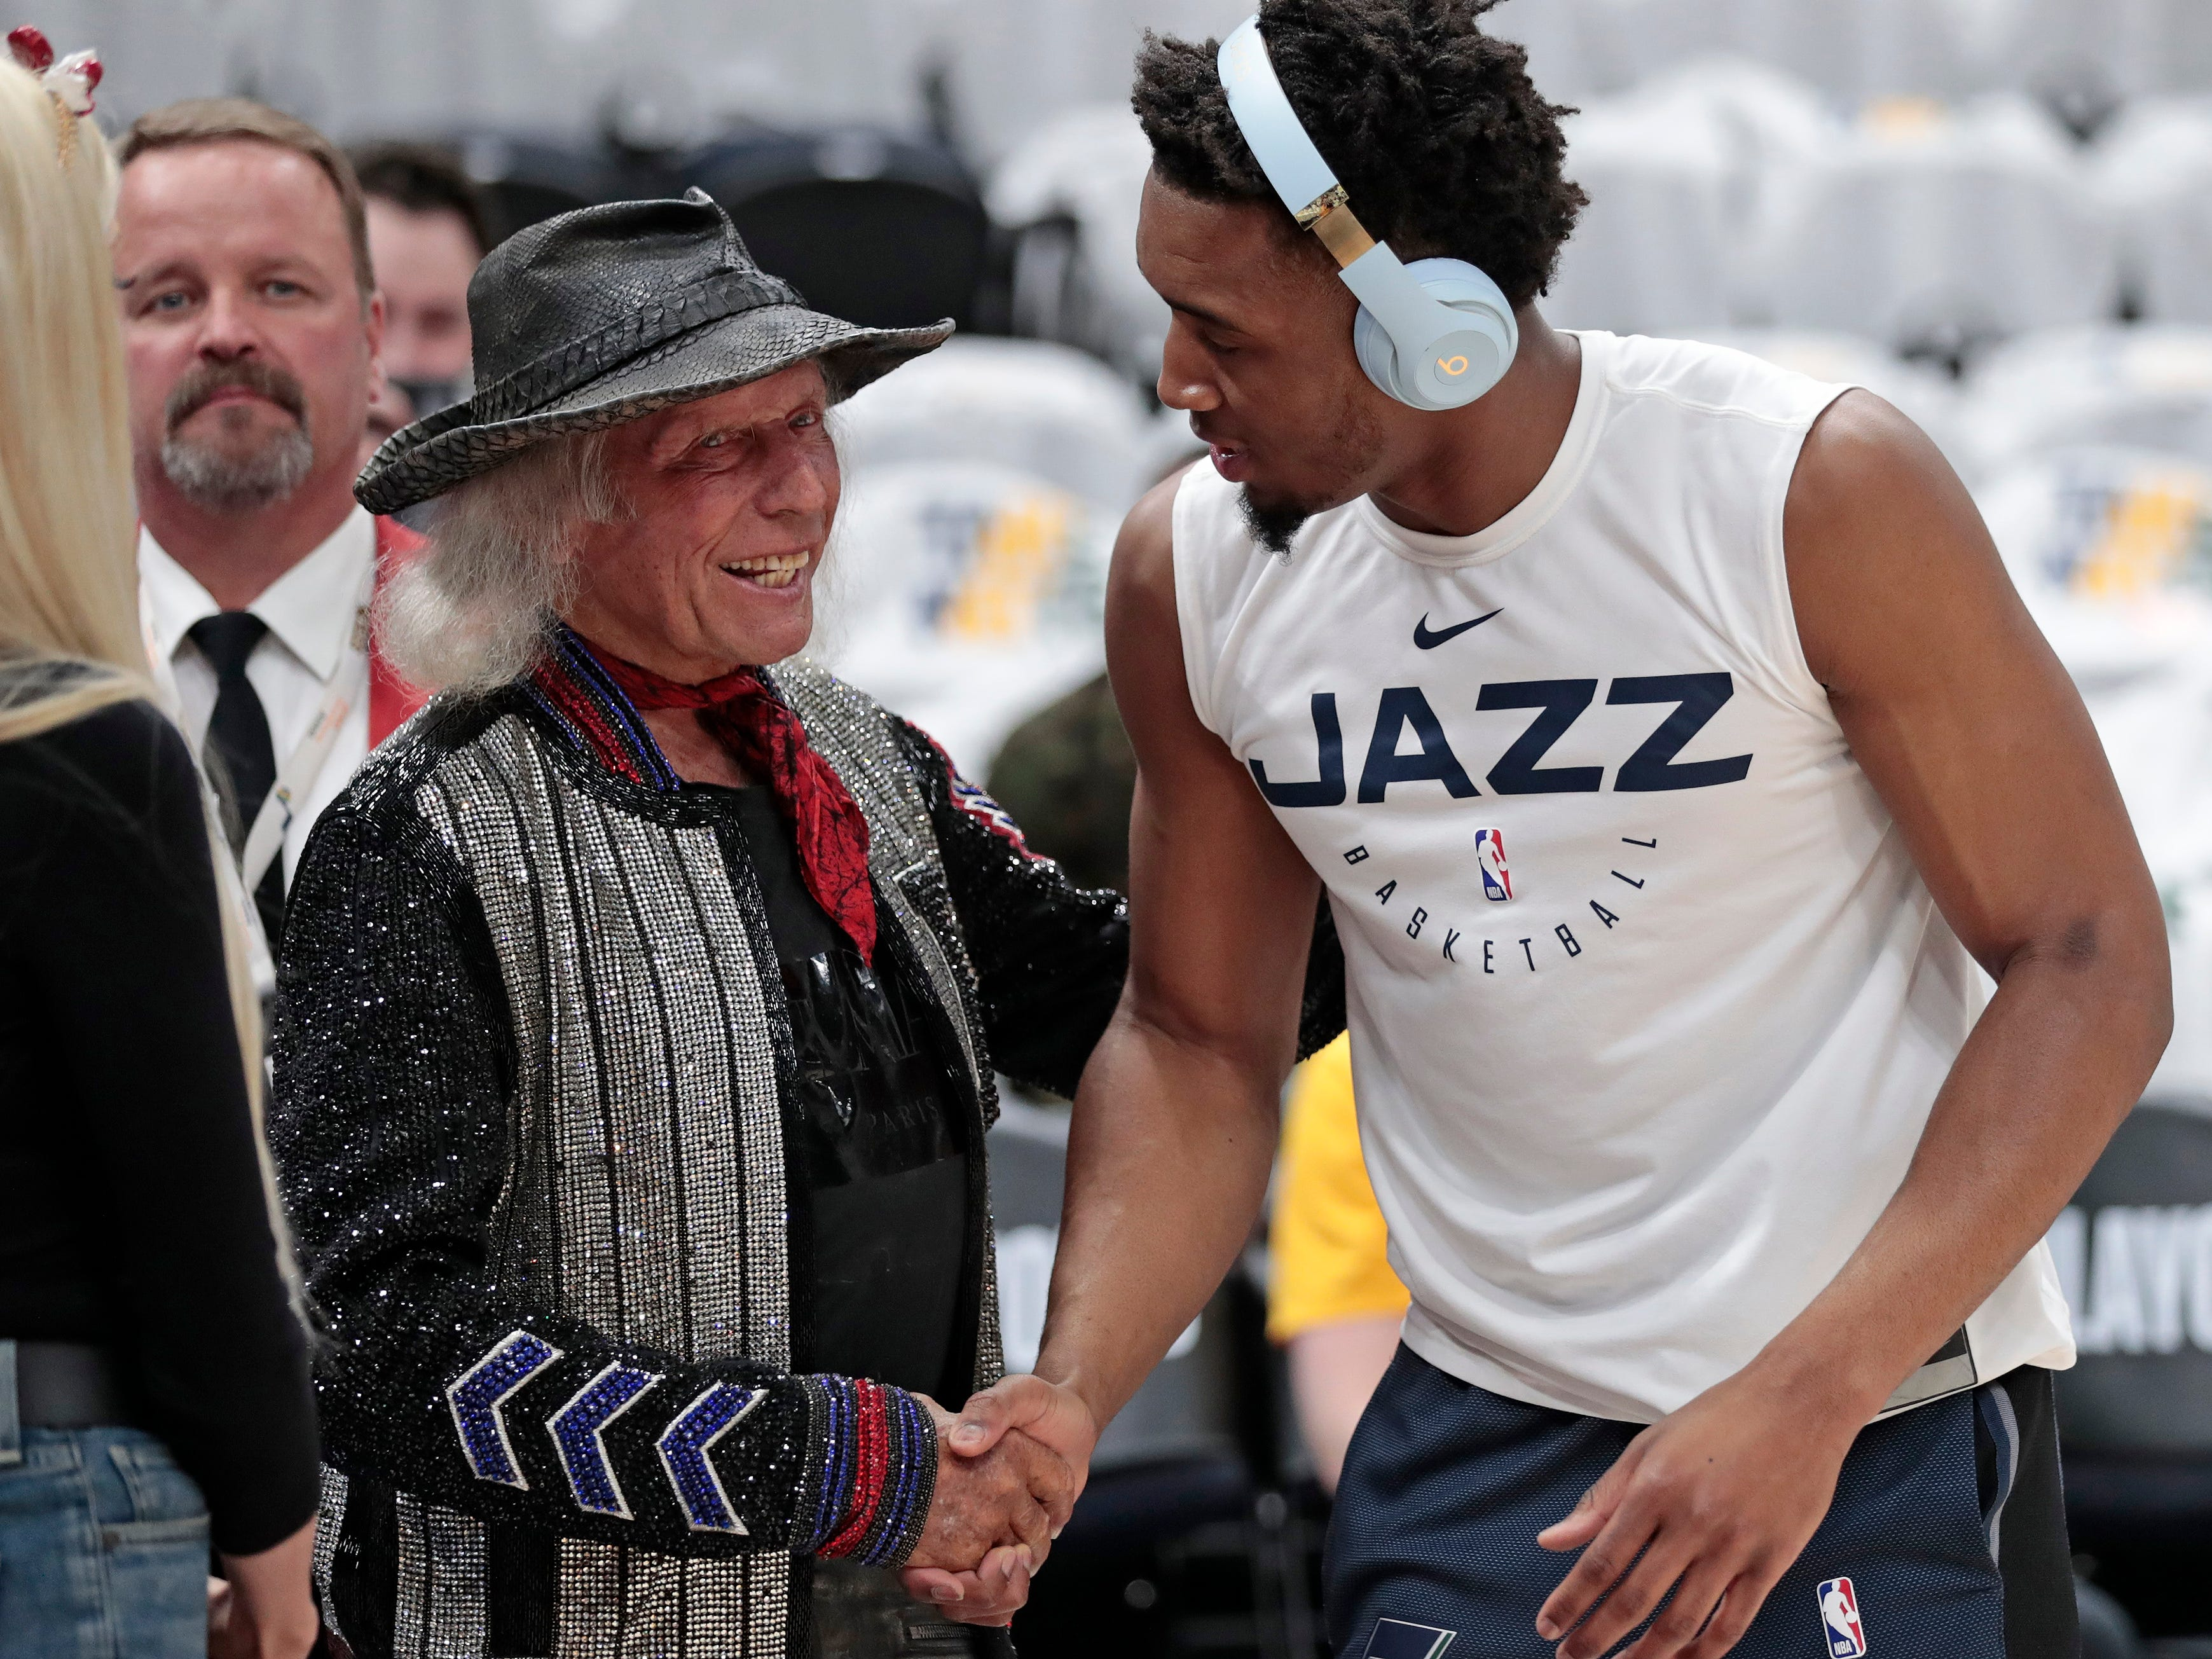 April 22: NBA superfan and millionaire Jimmy Goldstein greets Jazz guard Donovan Mitchell before Game 4 against the Rockets.